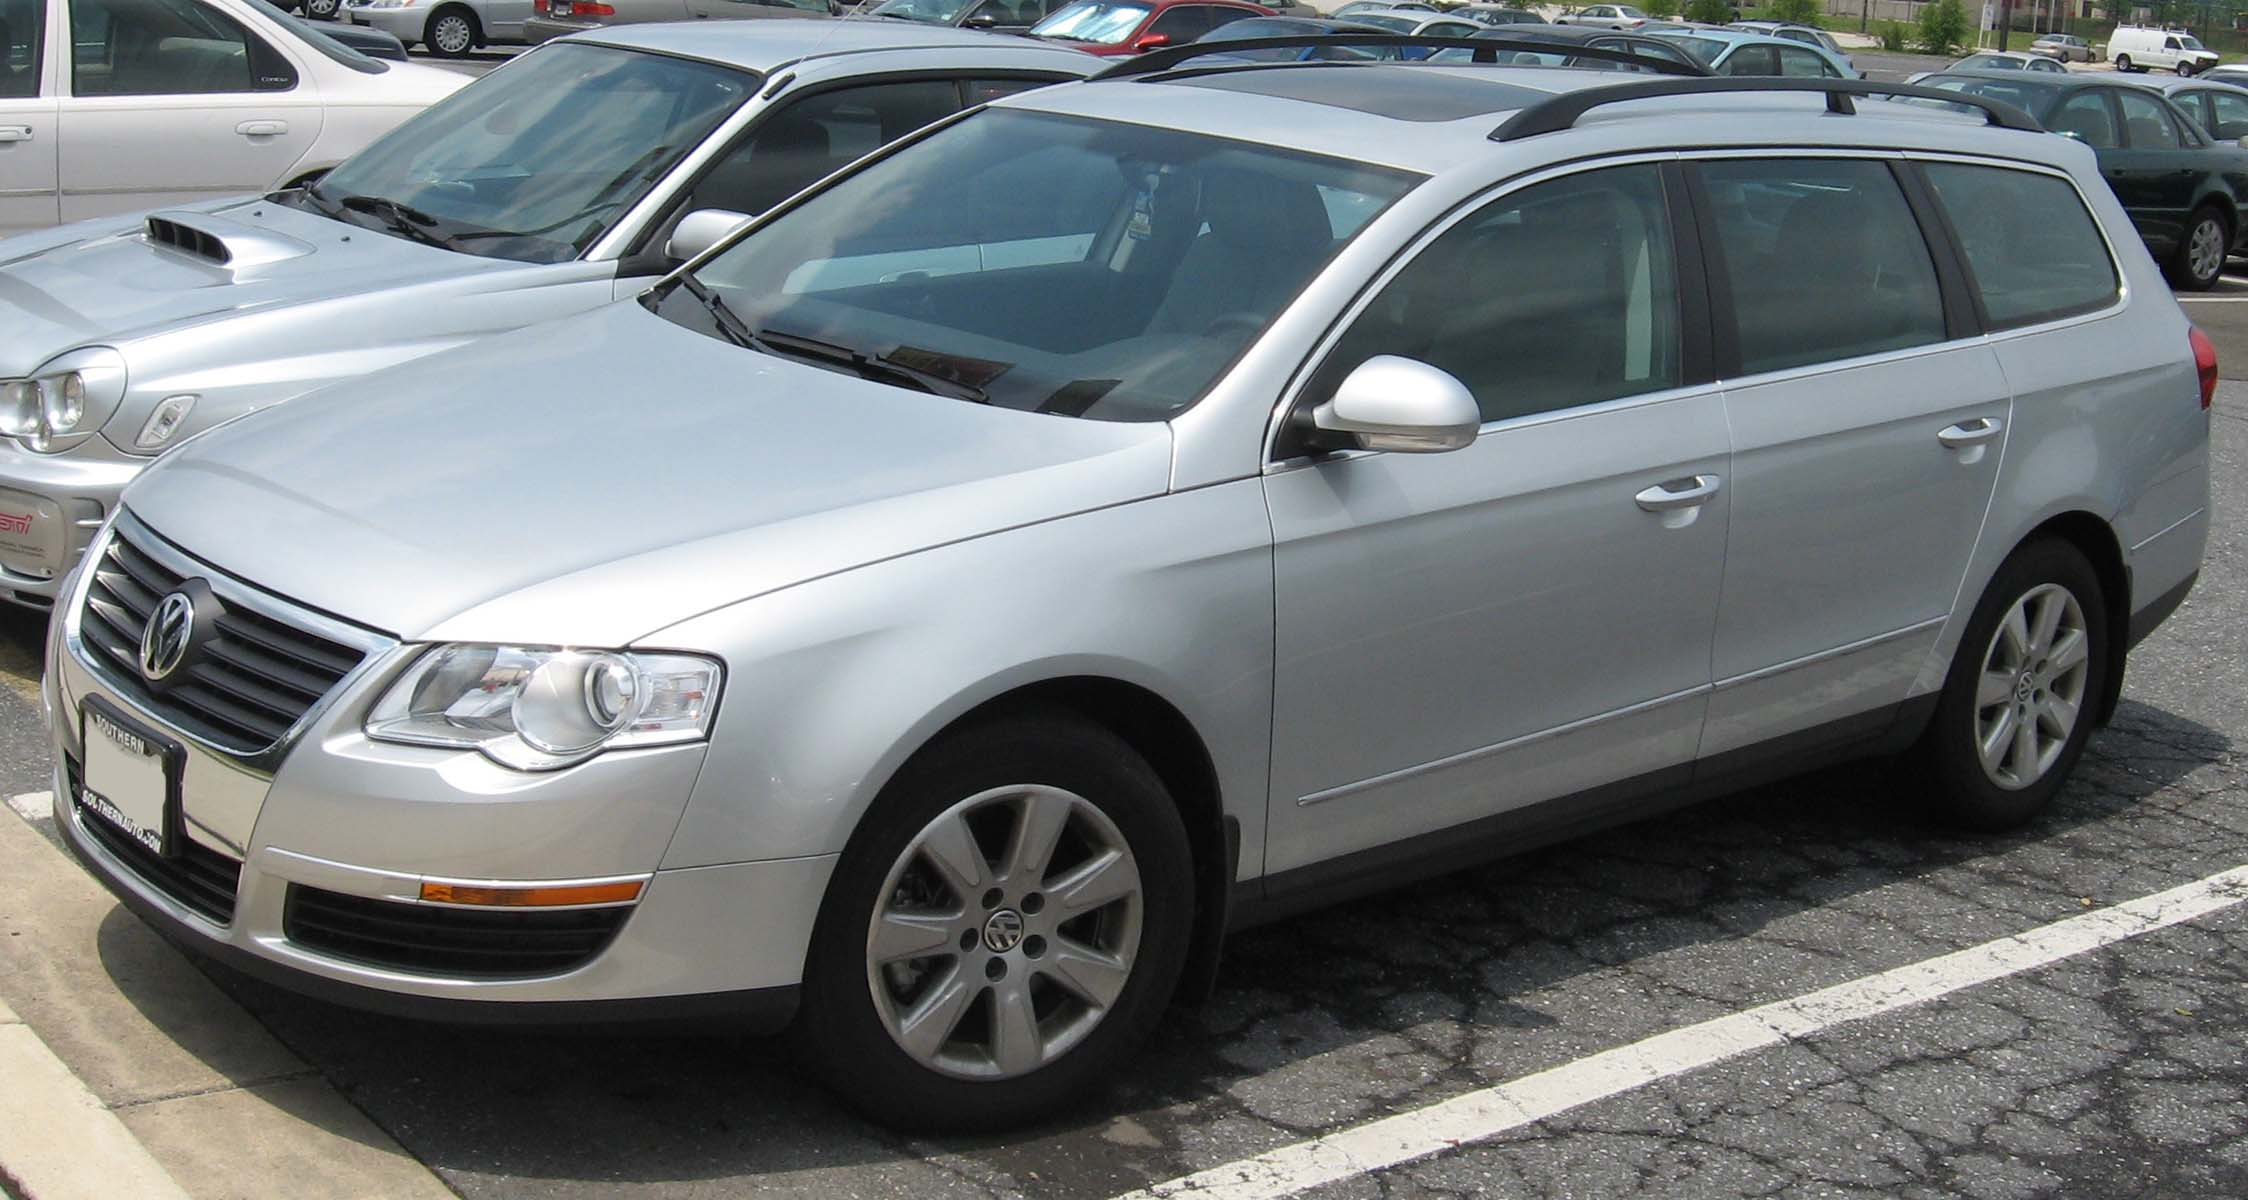 file volkswagen passat wagon wikimedia commons. Black Bedroom Furniture Sets. Home Design Ideas